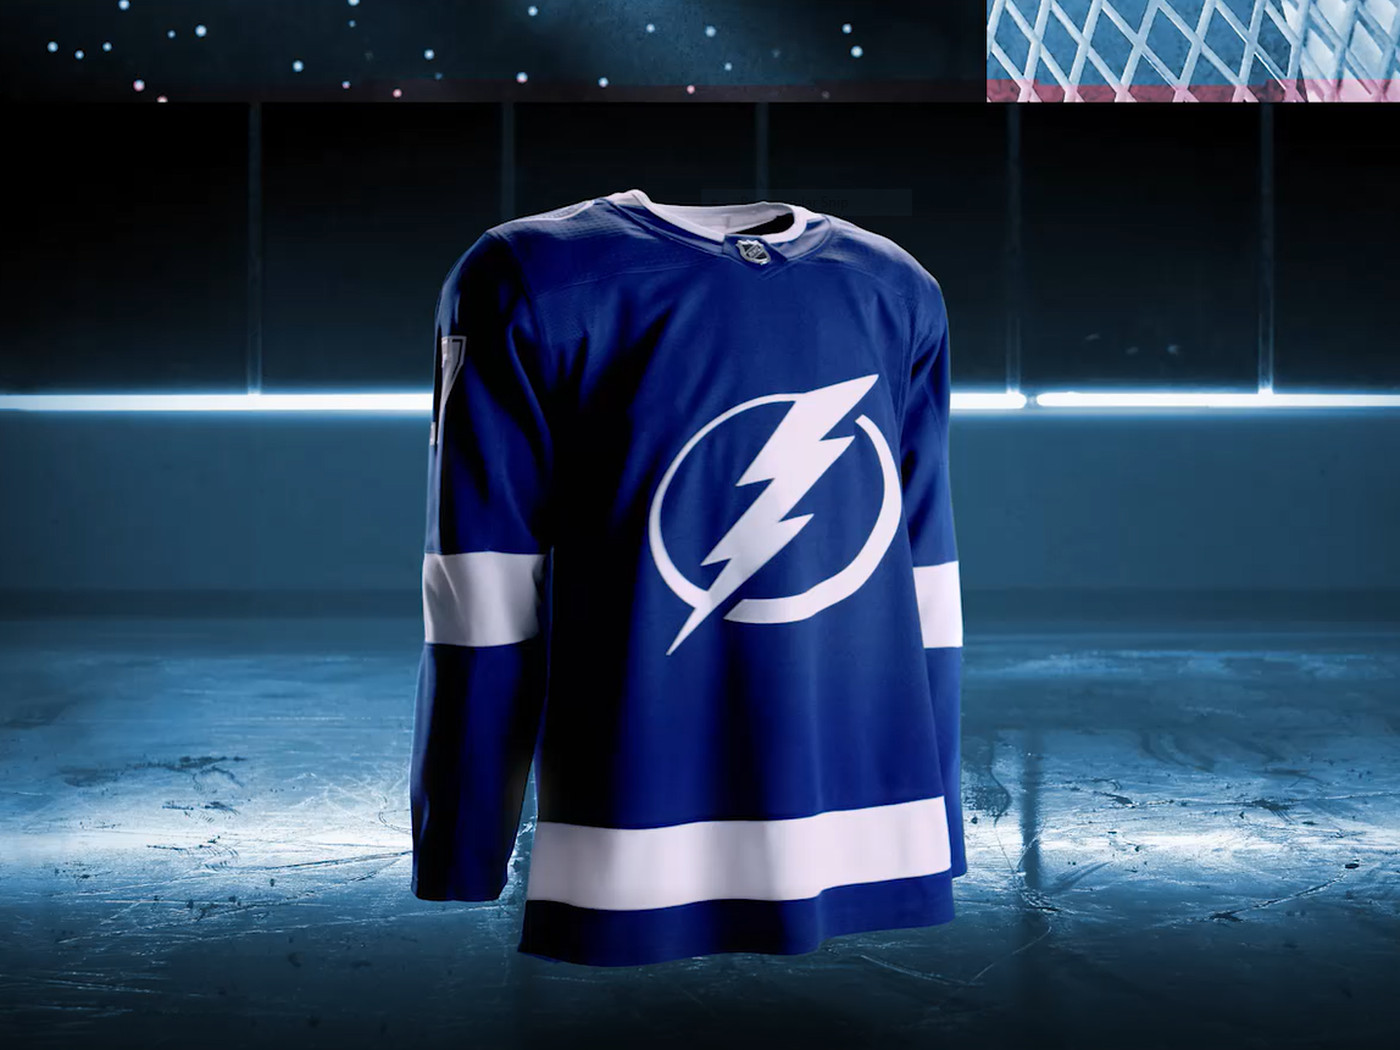 NHL and Adidas debut new Tampa Bay Lightning jerseys - Raw Charge